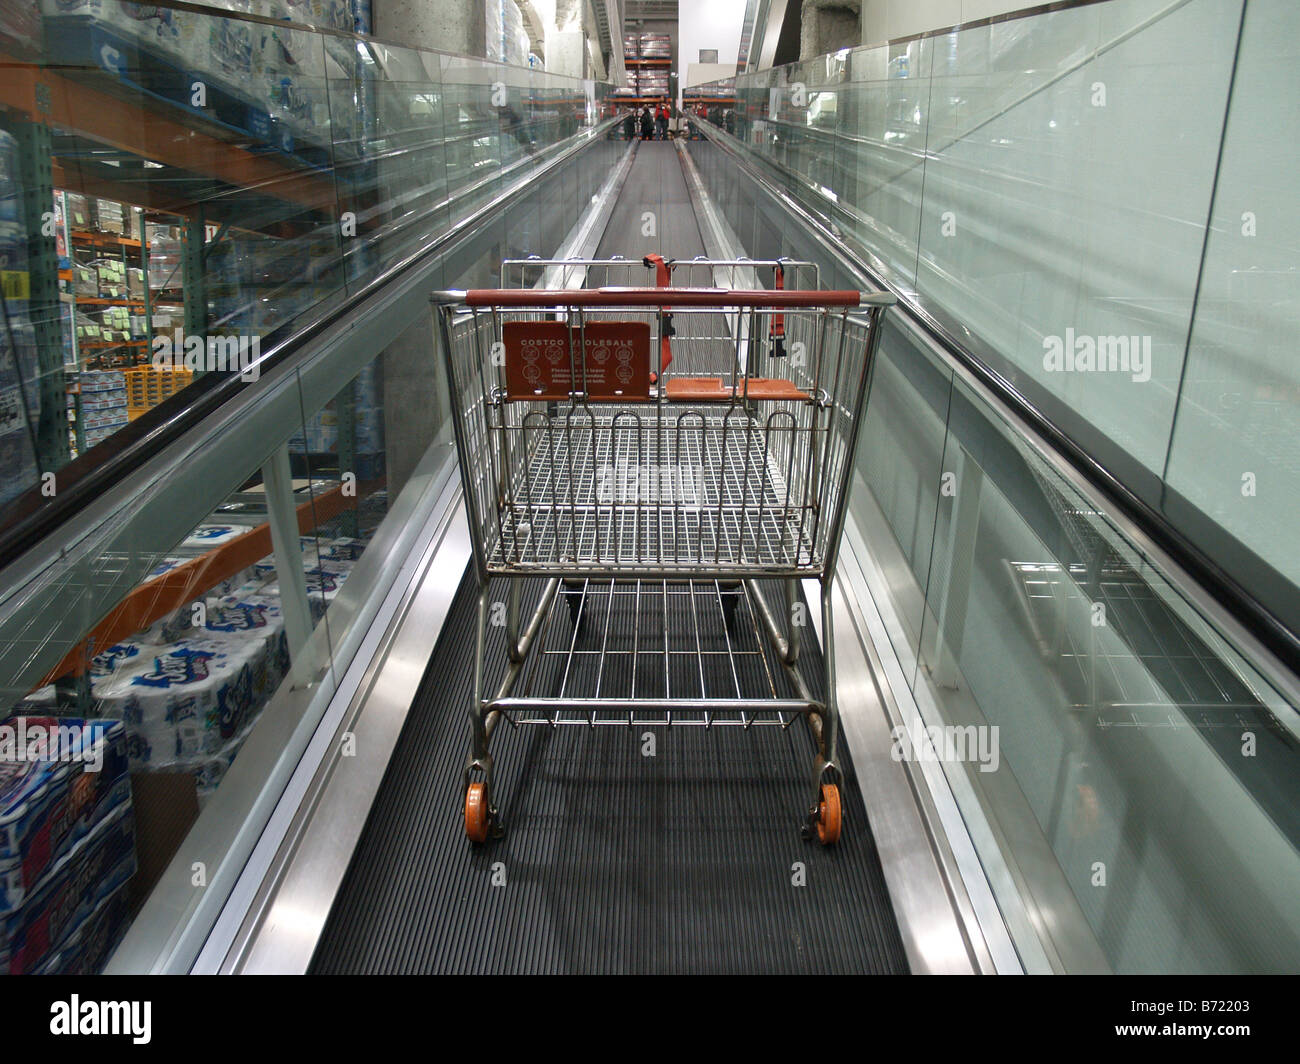 costco cart stock photos costco cart stock images alamy an empty shopping card rides the up escalator at a costco whole big box store in